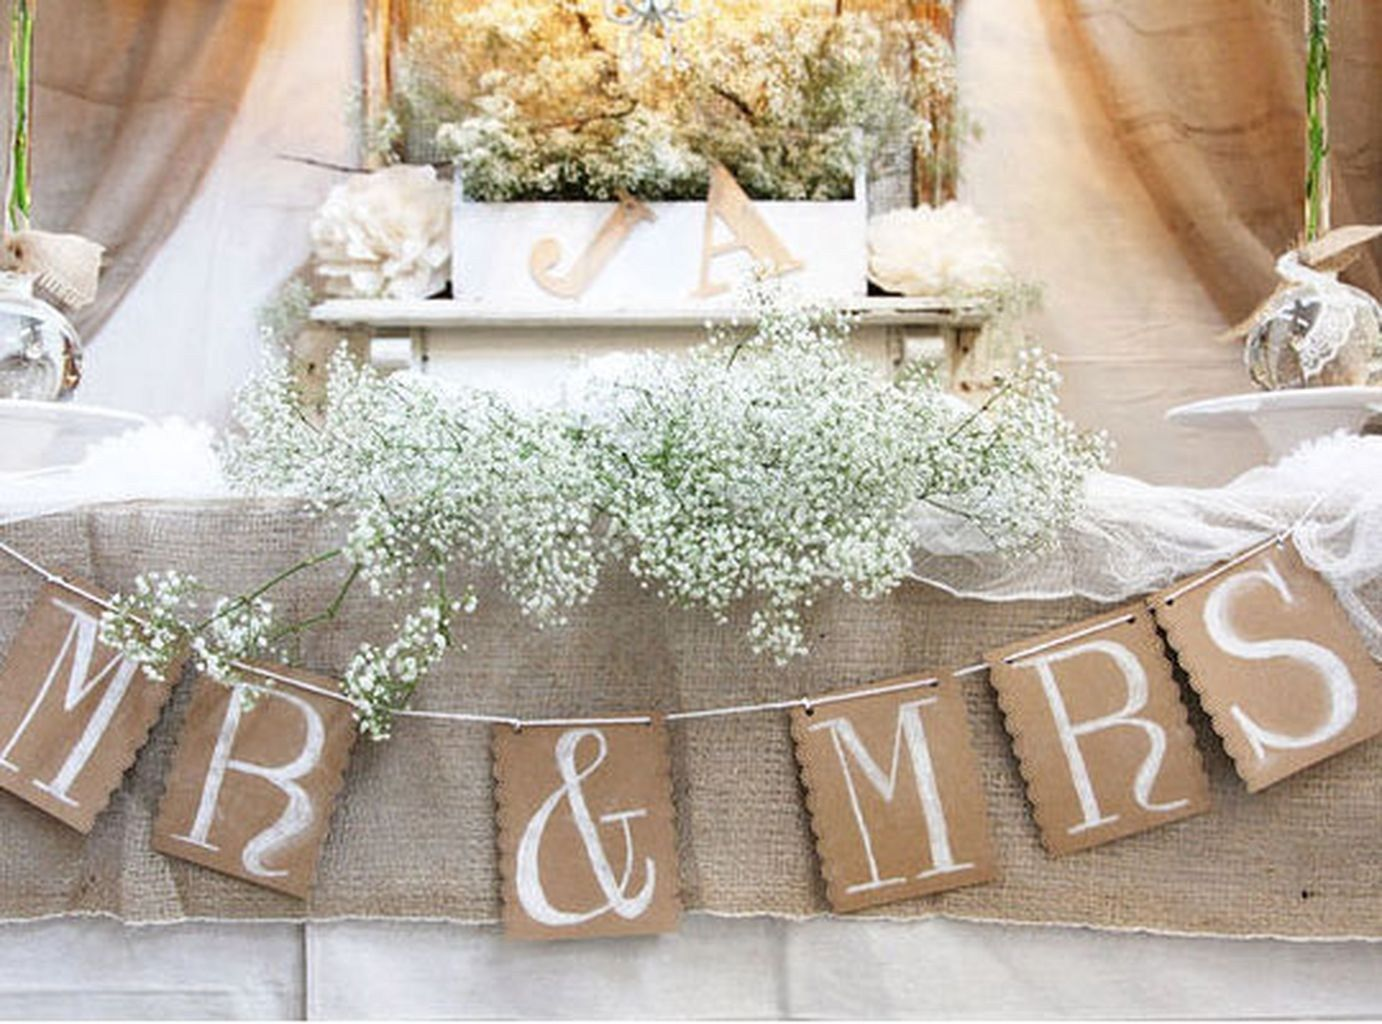 Diy wedding table decorations ideas   Inexpensive and Unique Summer Themed Bridal Shower Ideas